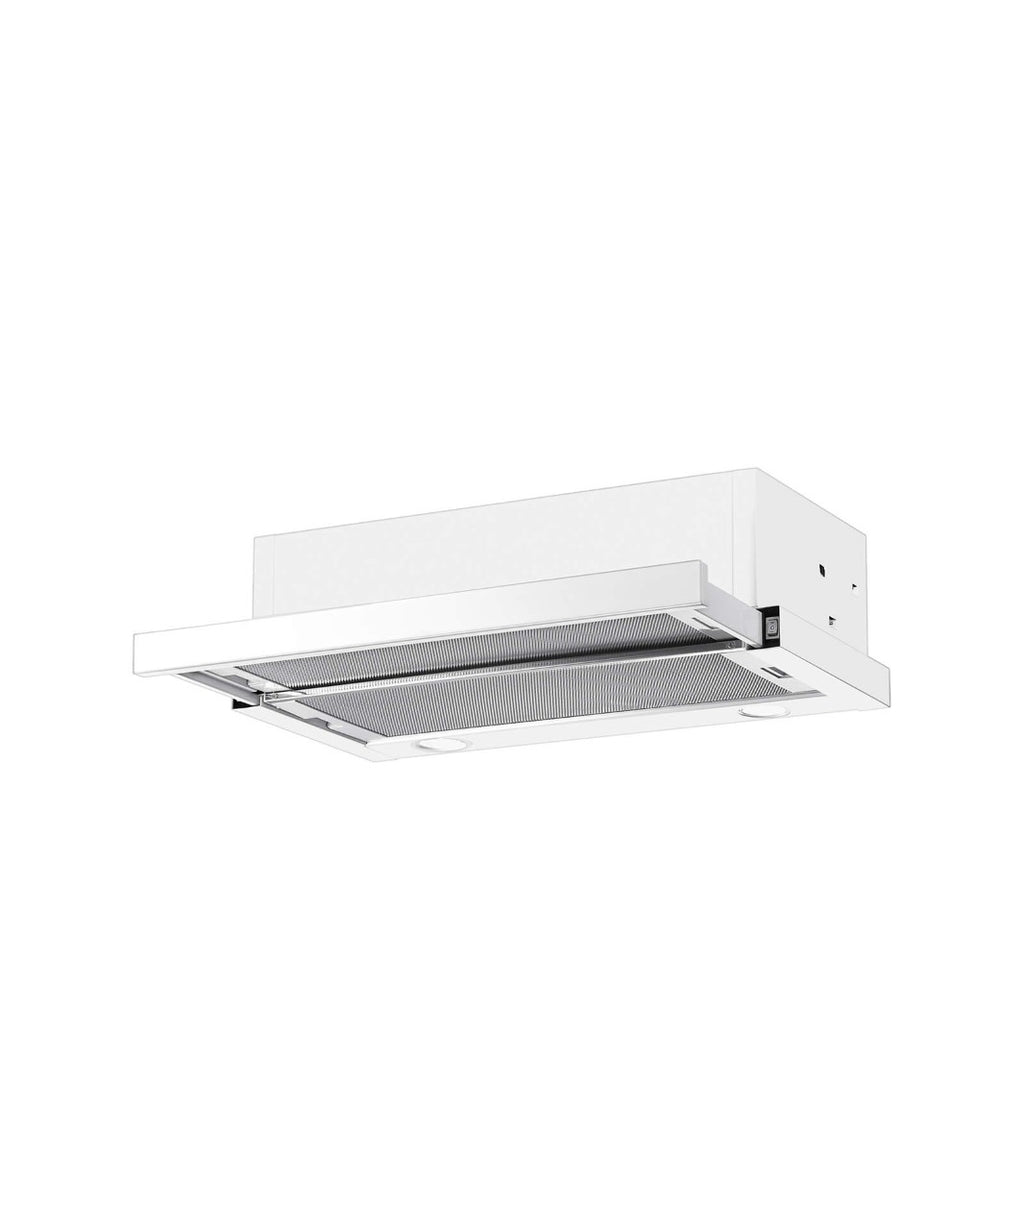 DMG SHOP - Fisher & Paykel 60cm Slide-Out Rangehood (Unbranded) air movement 180m³/hr